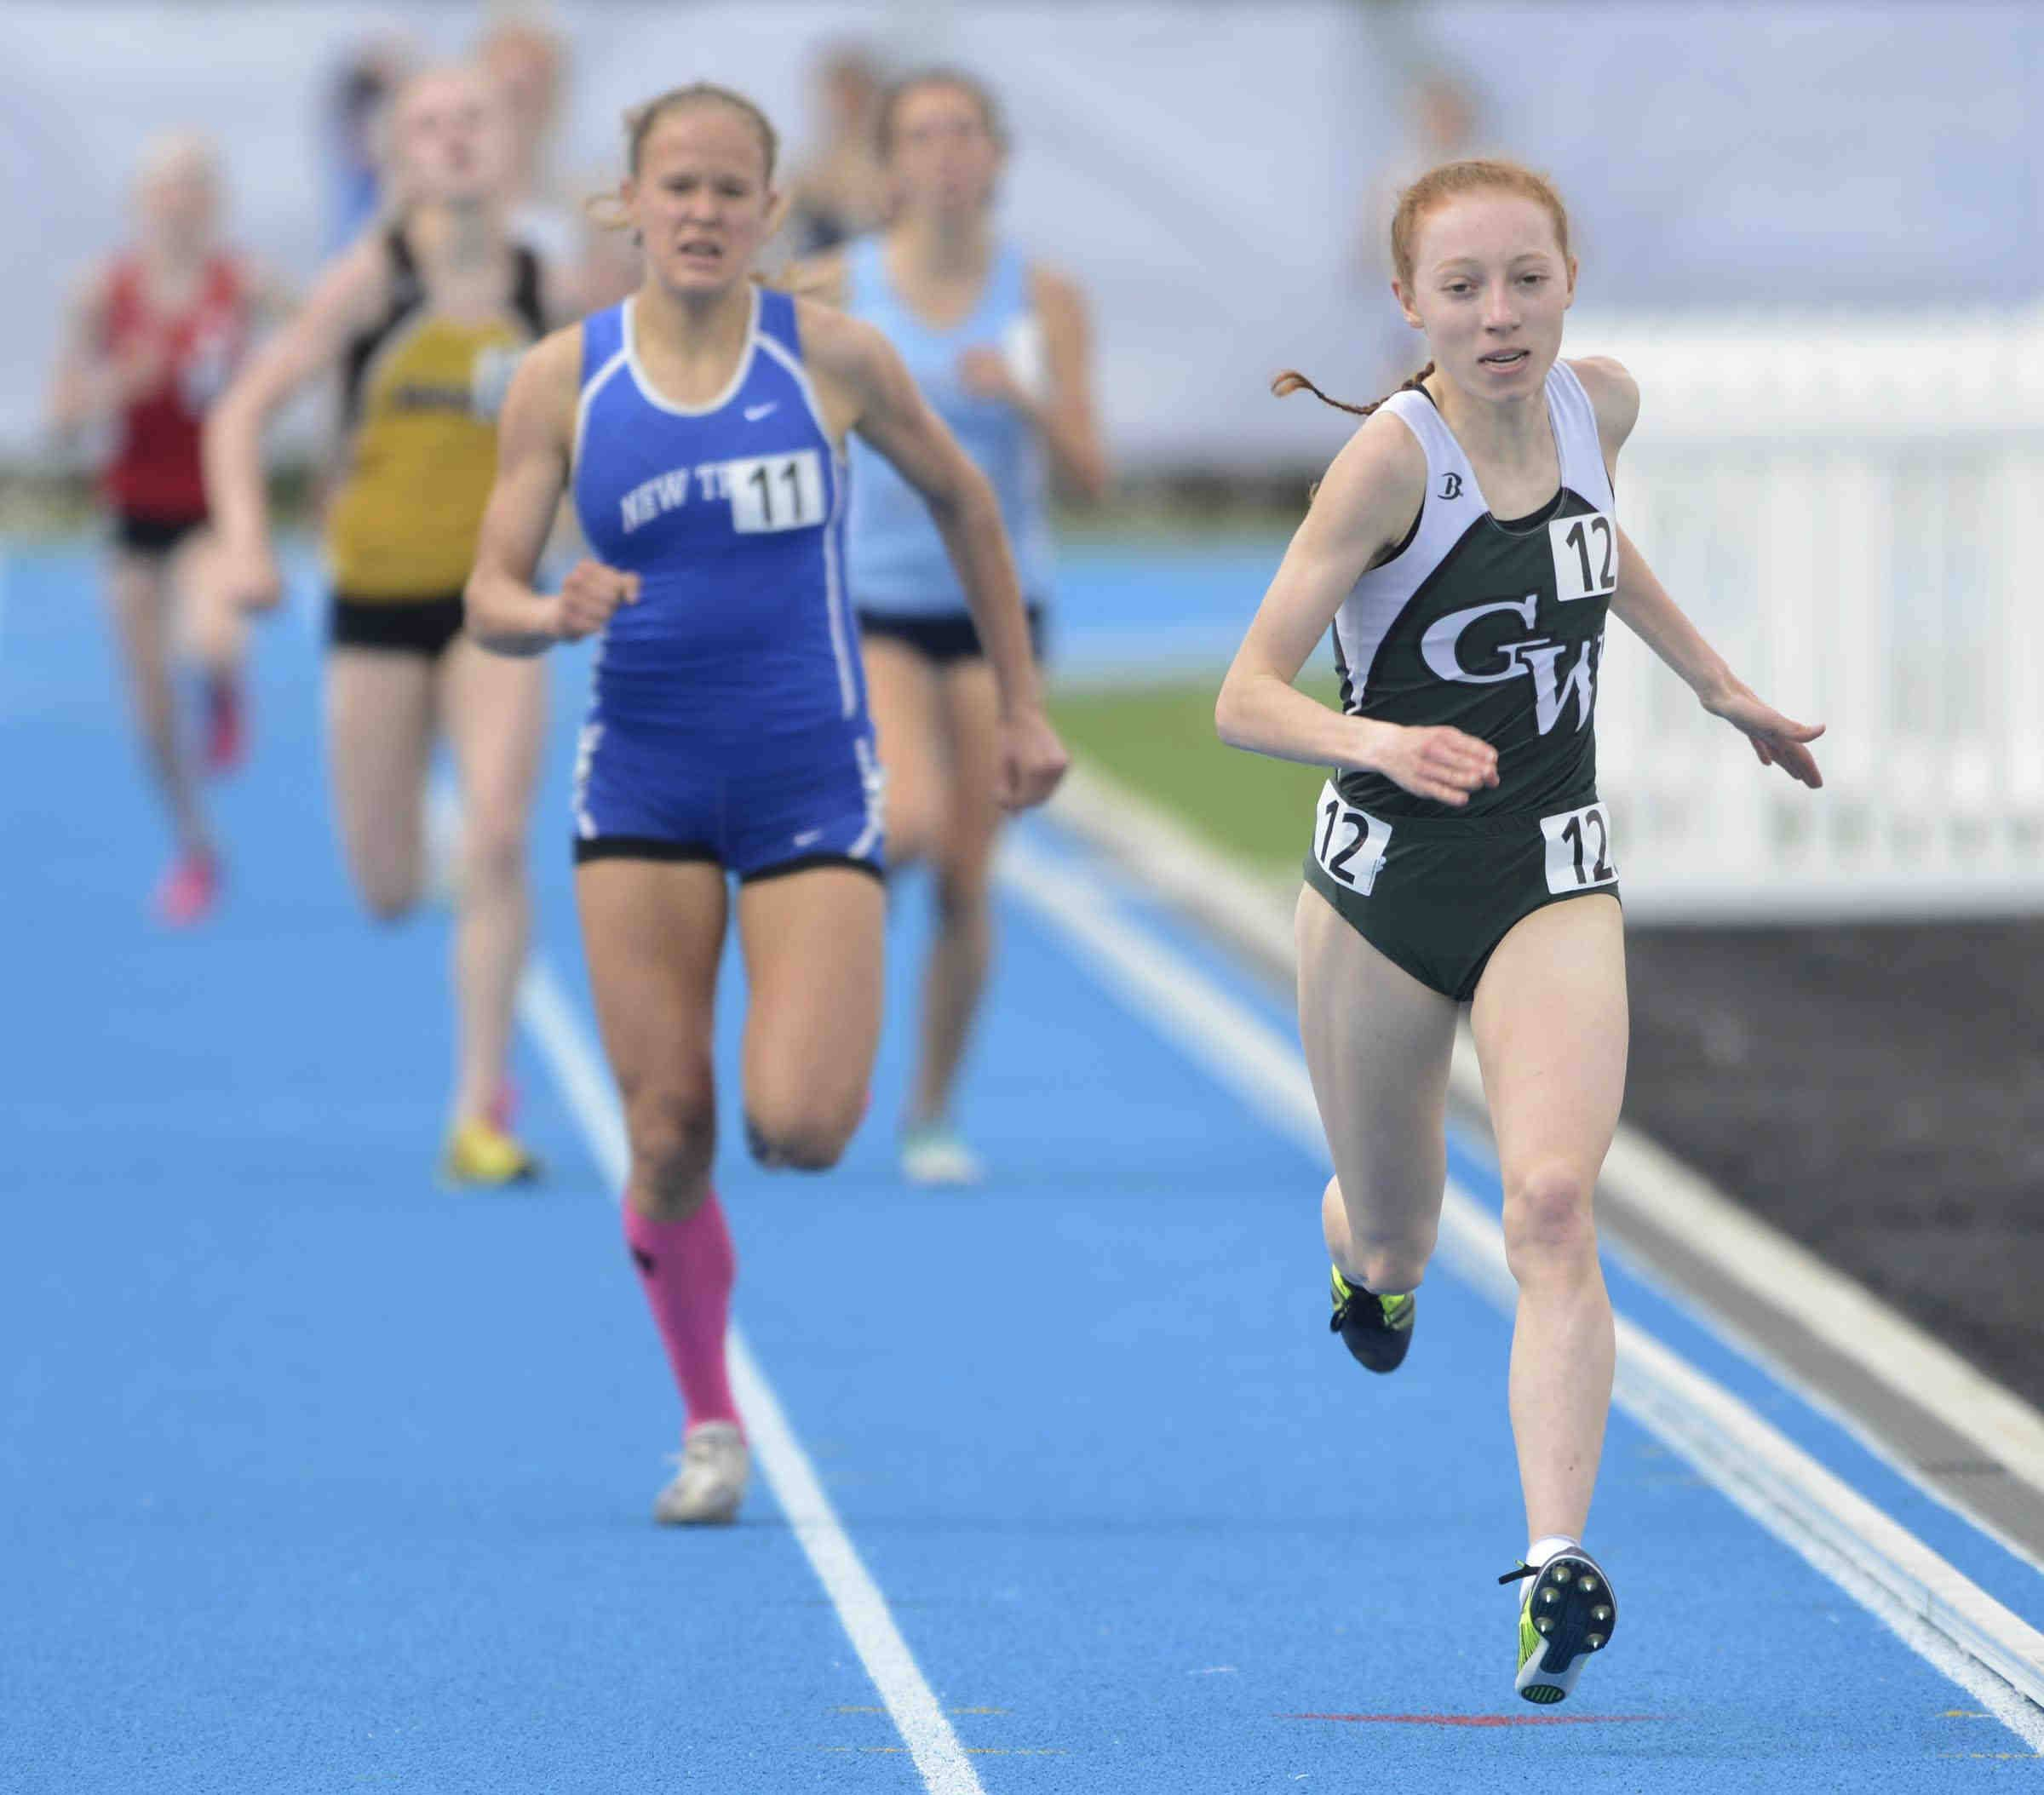 Glenbard West's Madeline Perez wins the 3,200 meter run at the Class 3A girls state track and field finals at O'Brien Stadium at Eastern Illinois University in Charleston.